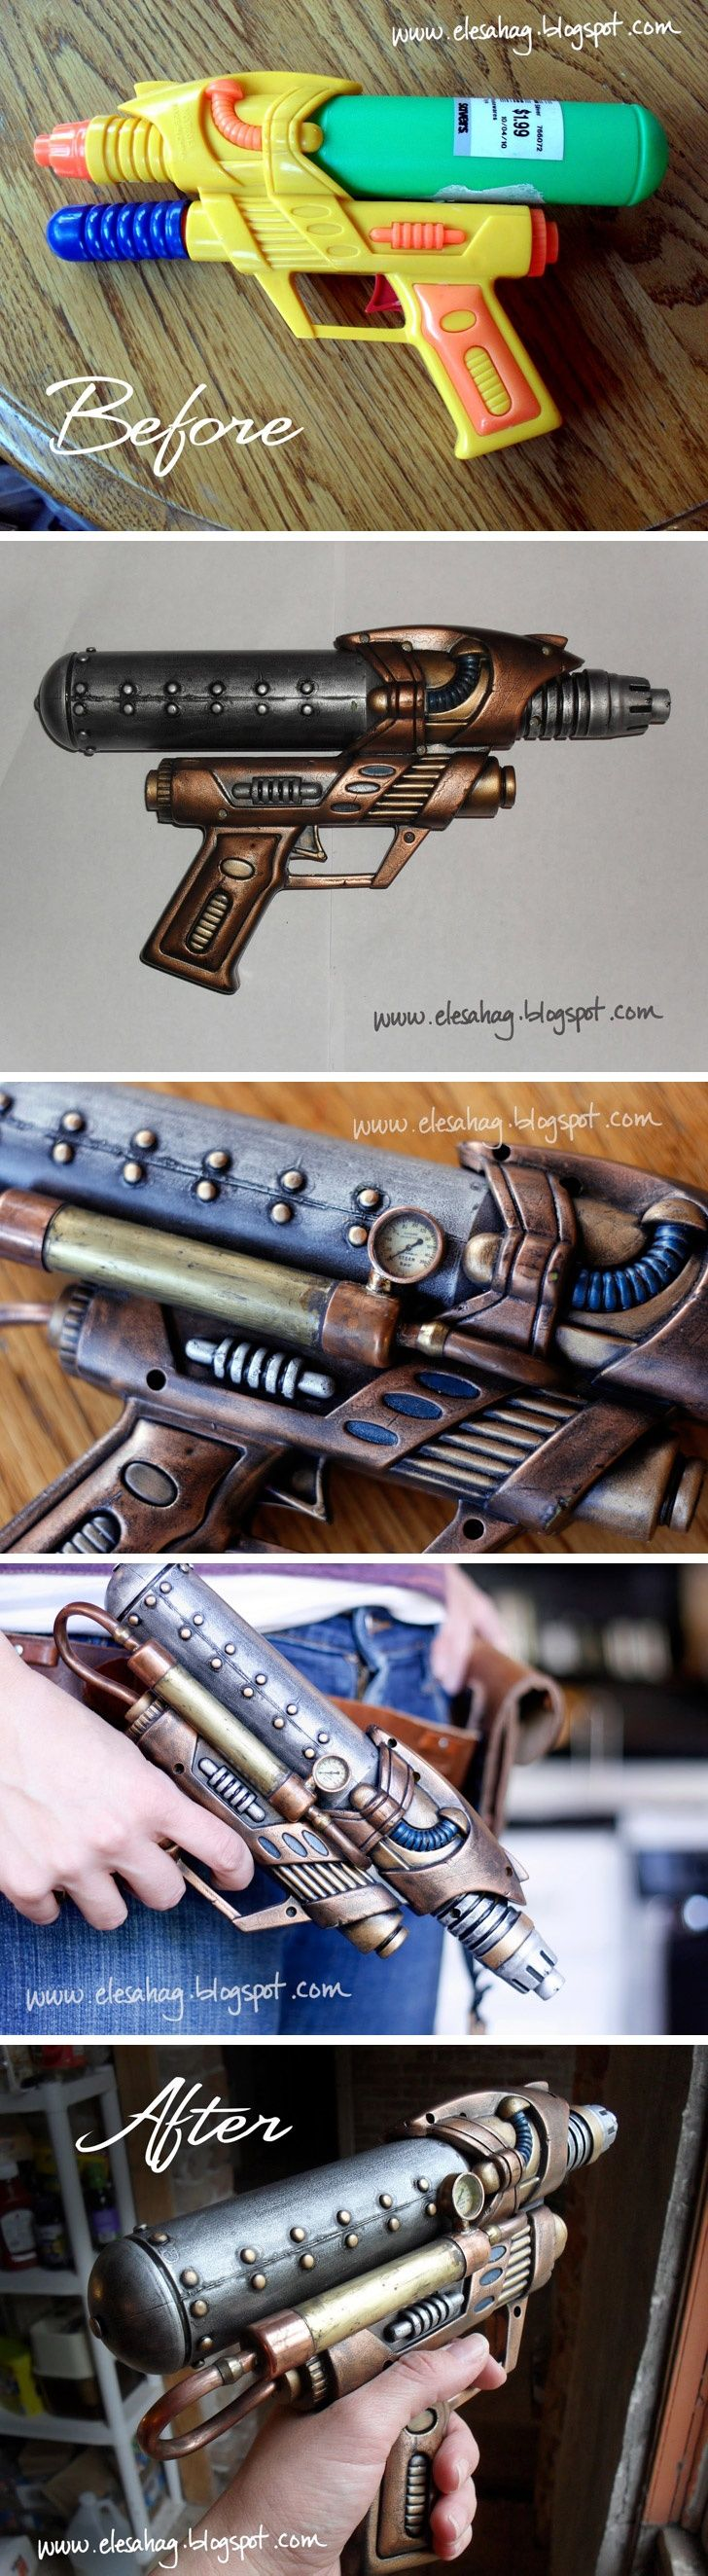 How to steampunk a water gun. soo cool! Probably painted black and colored with rub and buff.